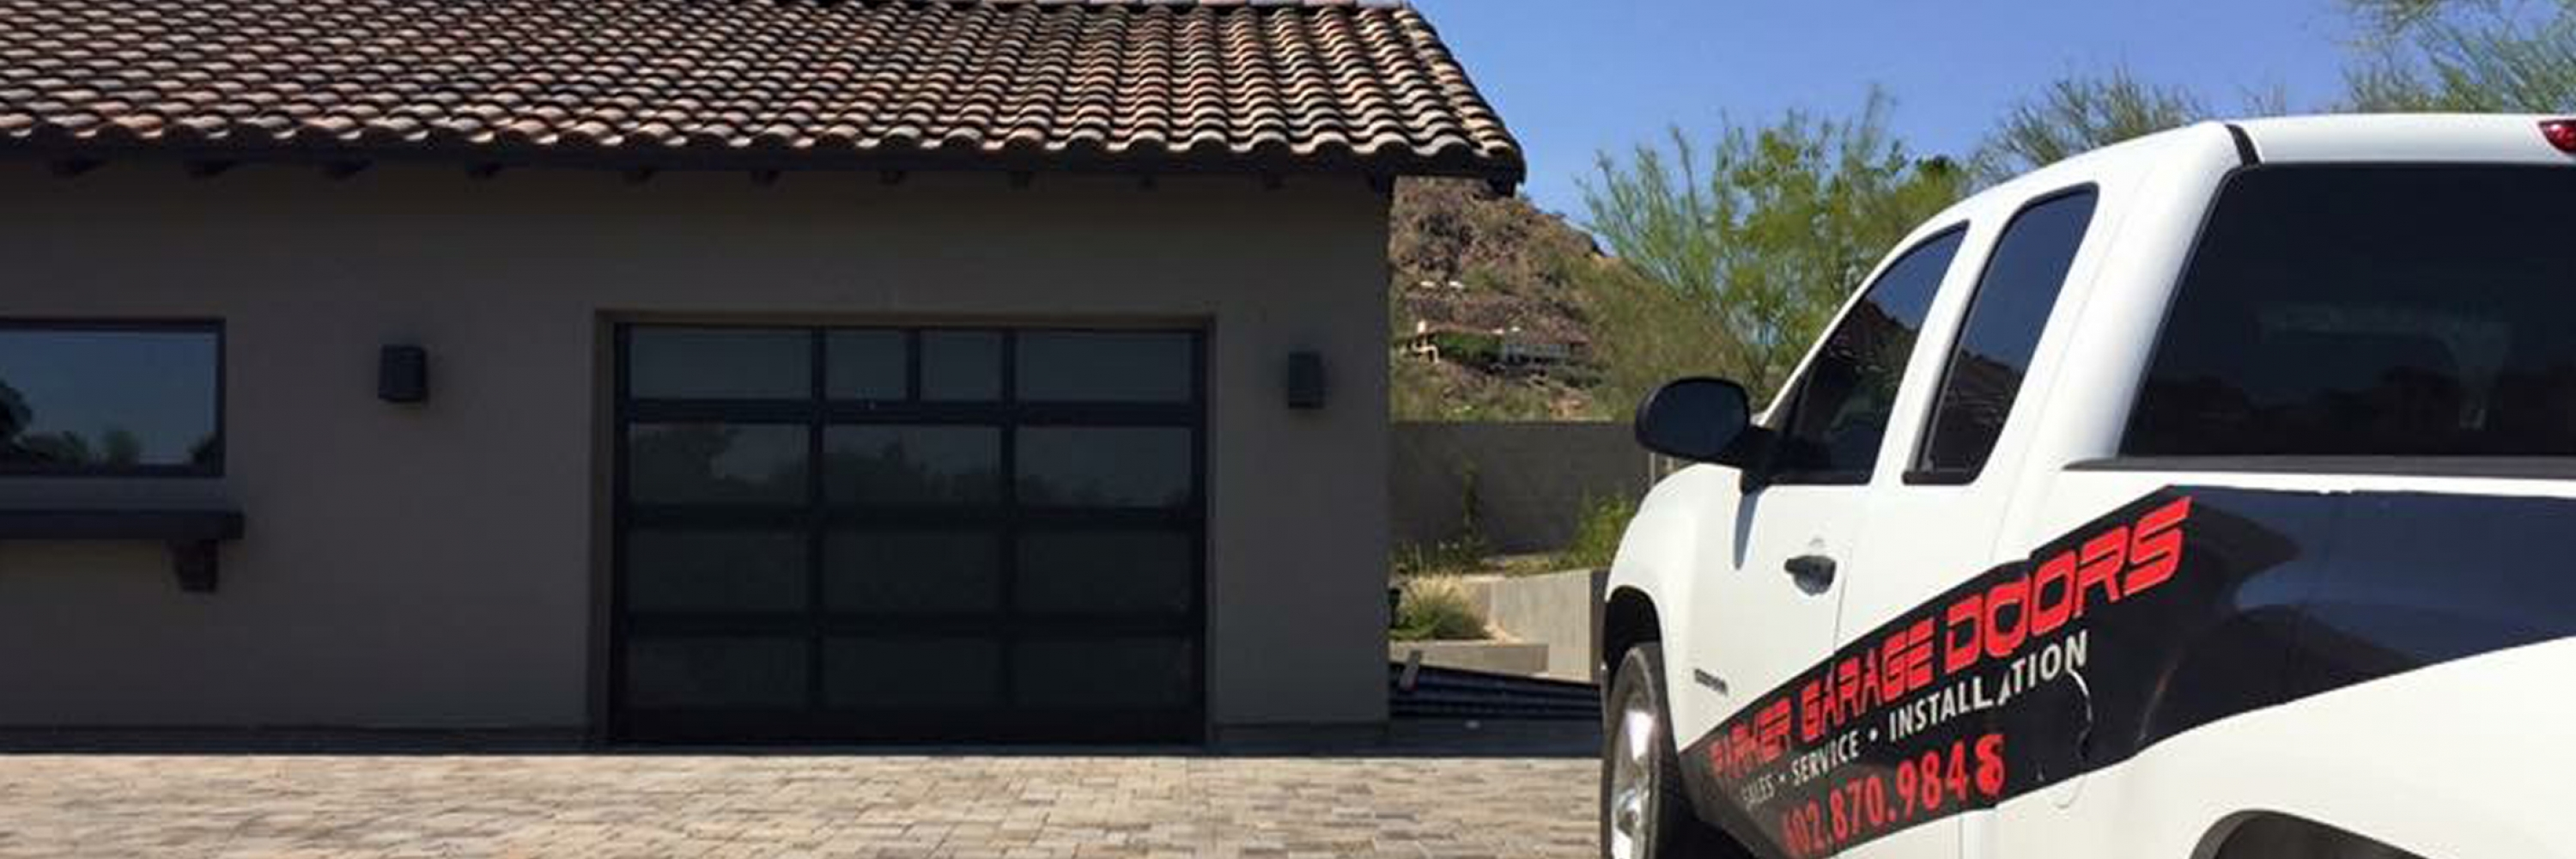 Parker Garage Doors & More – Lake Havasu Garage Doors on signs and more, kitchen cabinets and more, painting and more, air conditioning and more, blinds and more,